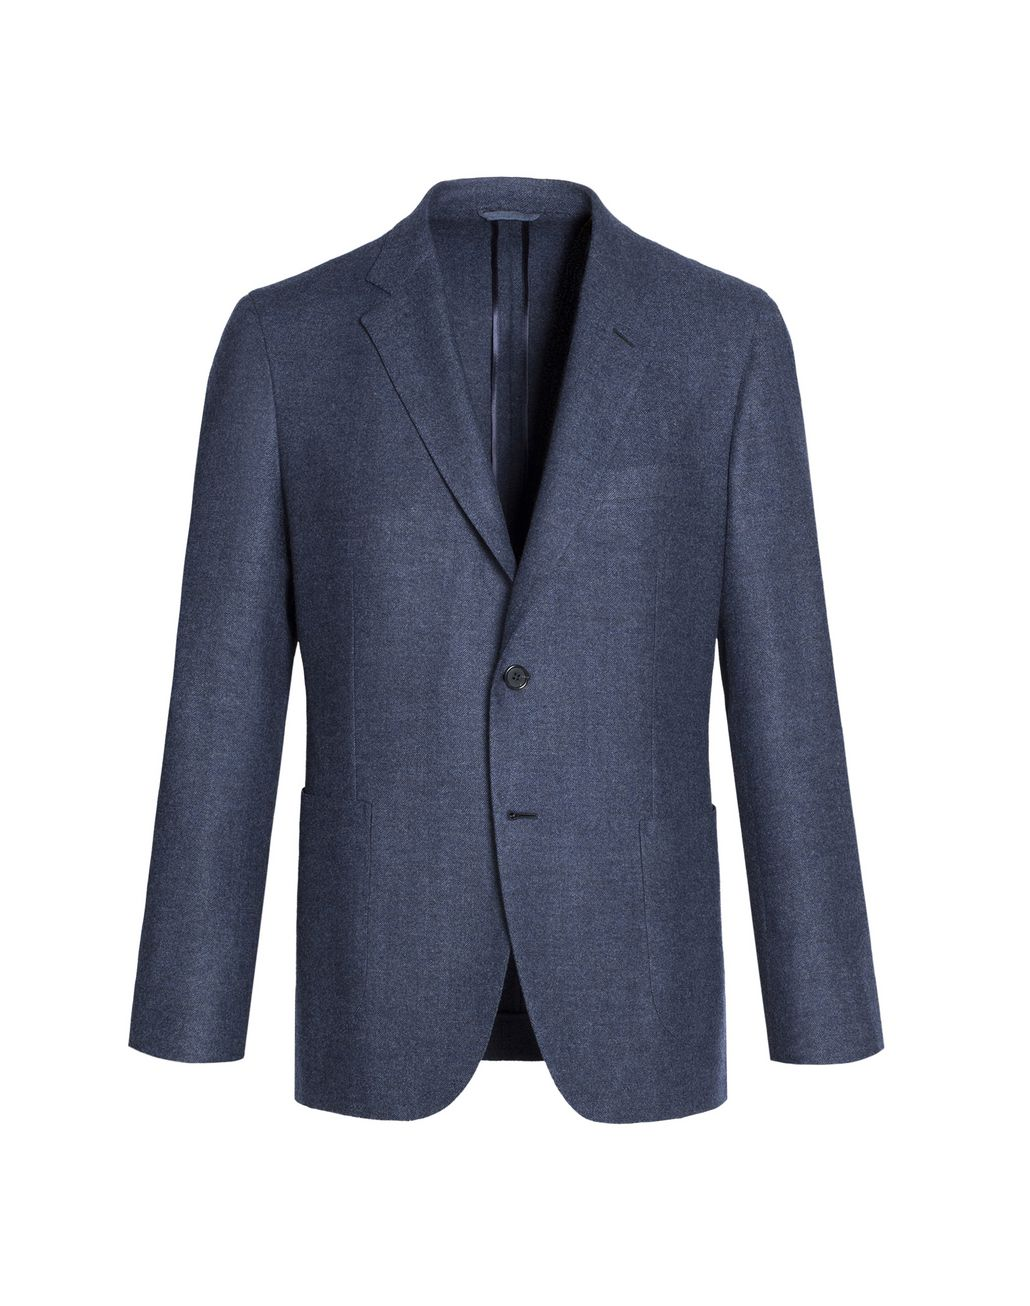 BRIONI Denim Blue Herringbone Plume Jacket Jackets [*** pickupInStoreShippingNotGuaranteed_info ***] f